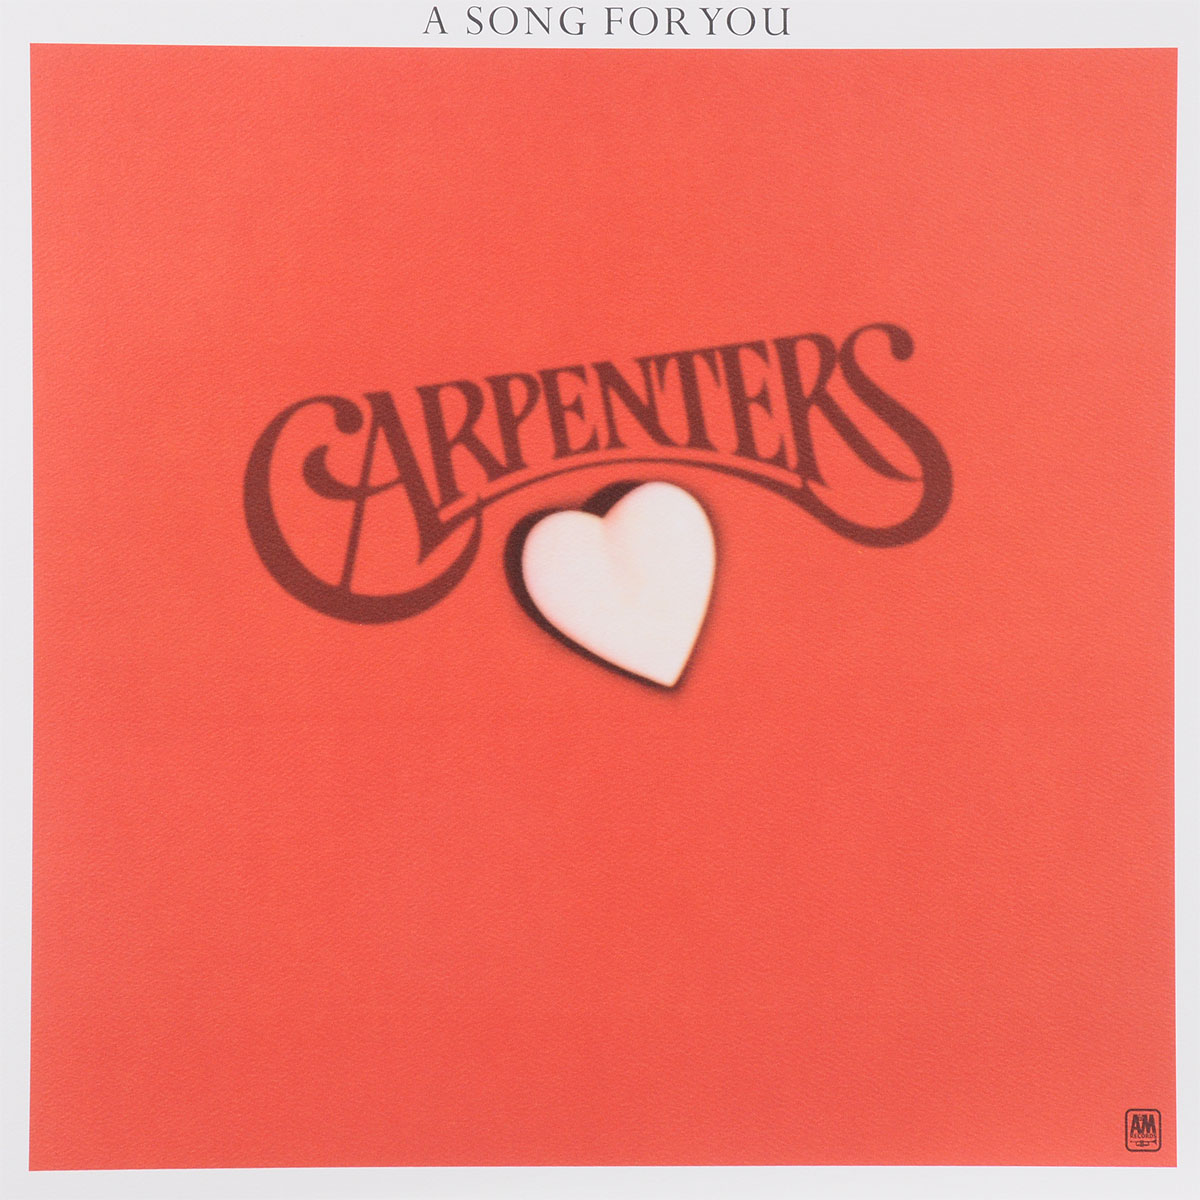 Carpenters. A Song For You (LP)